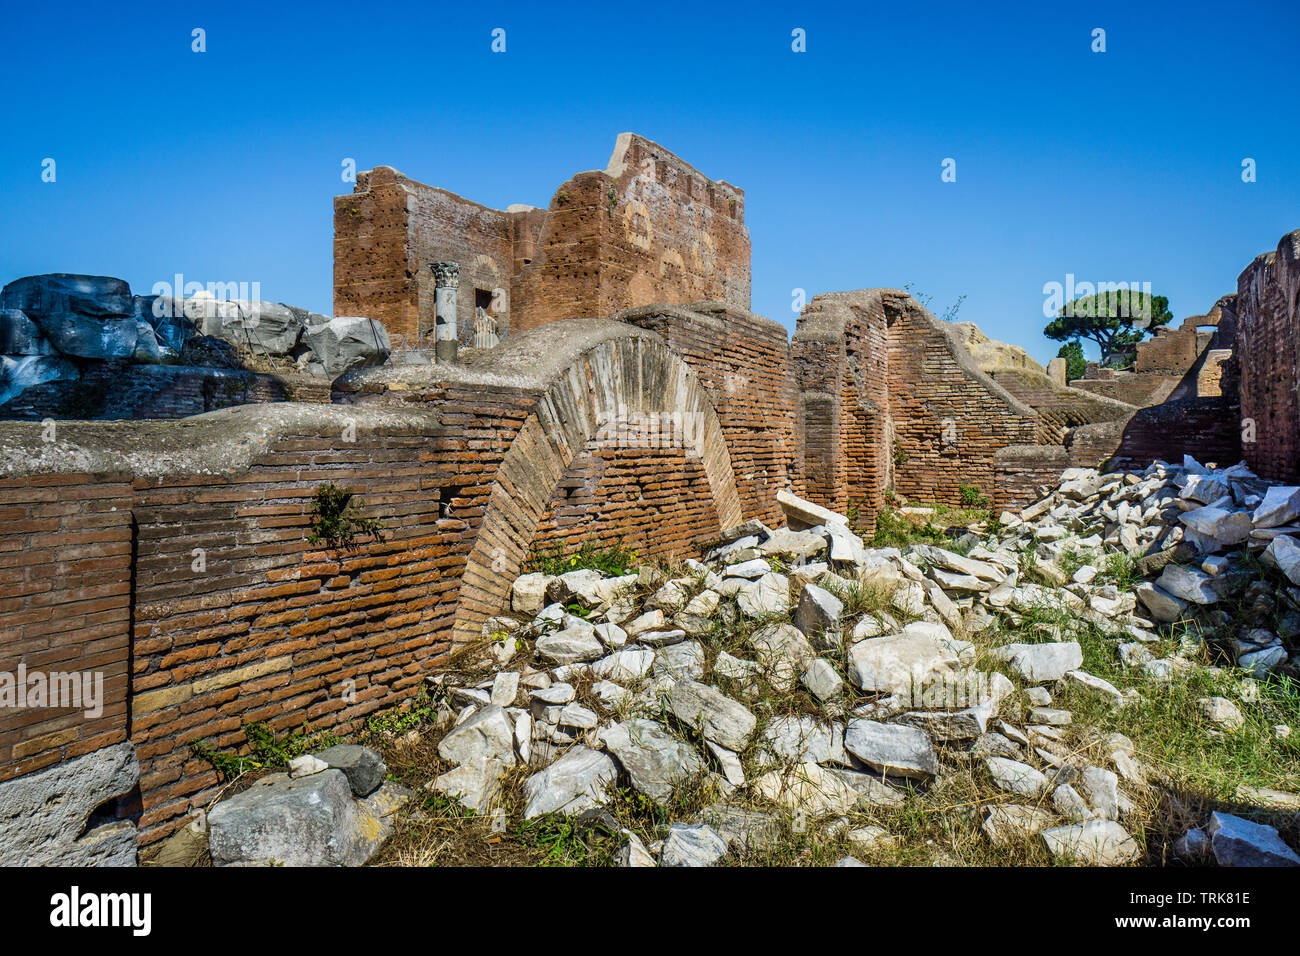 glimpse of the Capitolium from the ruins of the neighbouring Thermopolium at the archeological site of the Roman settlement of Ostia Antica, the ancie - Stock Image